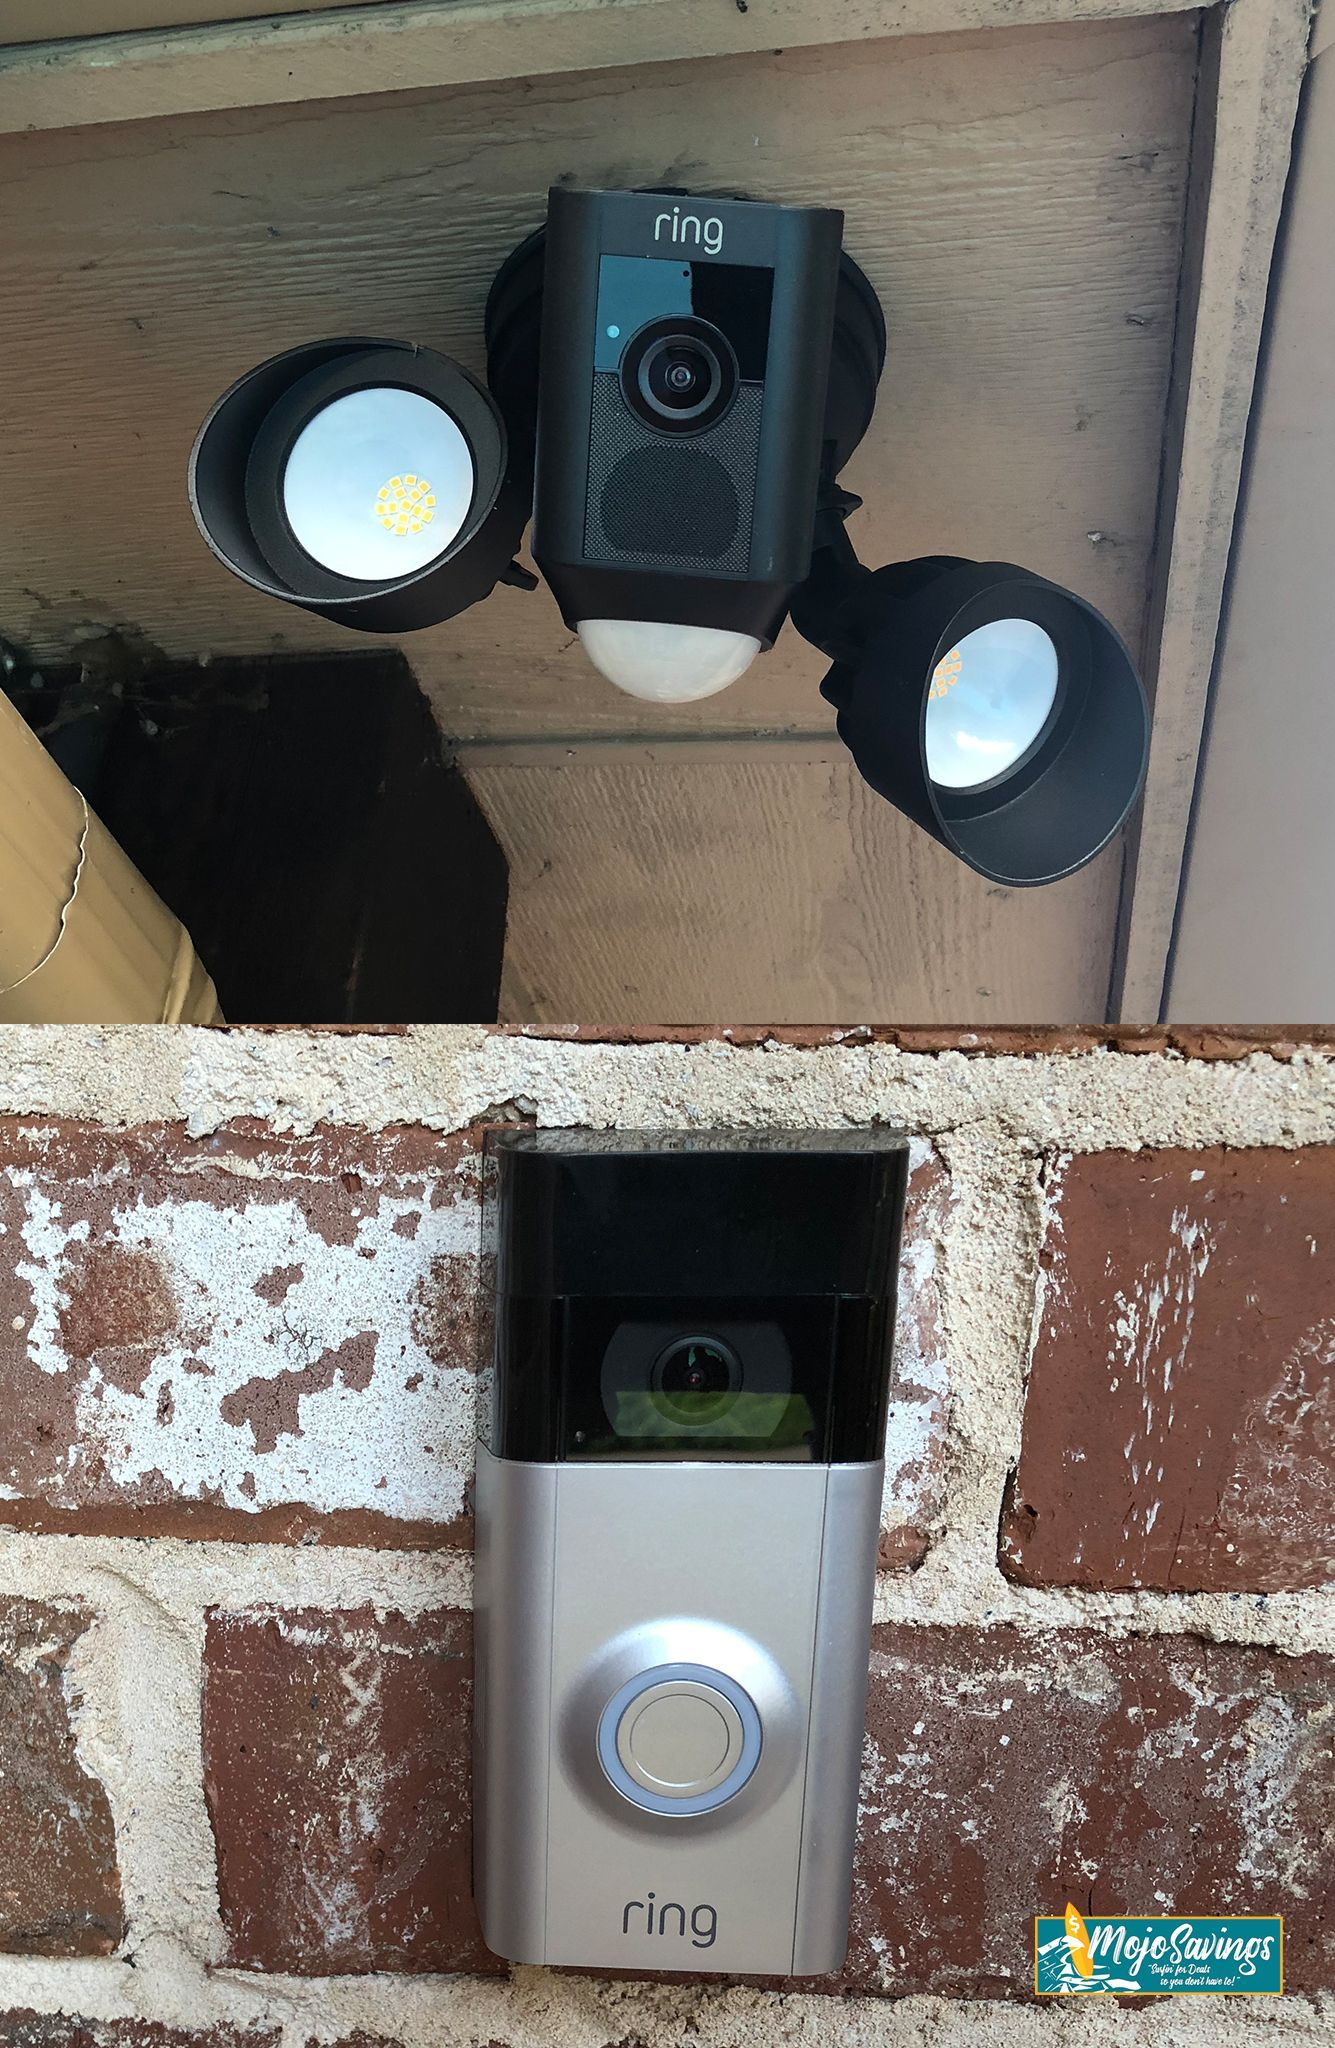 Hot Deal On Ring Products 2 Flood Lights Chime Pro Only 314 Shipped Ring 2 Doorbell Only 170 Diy Rings Smart Ring Ring Doorbell